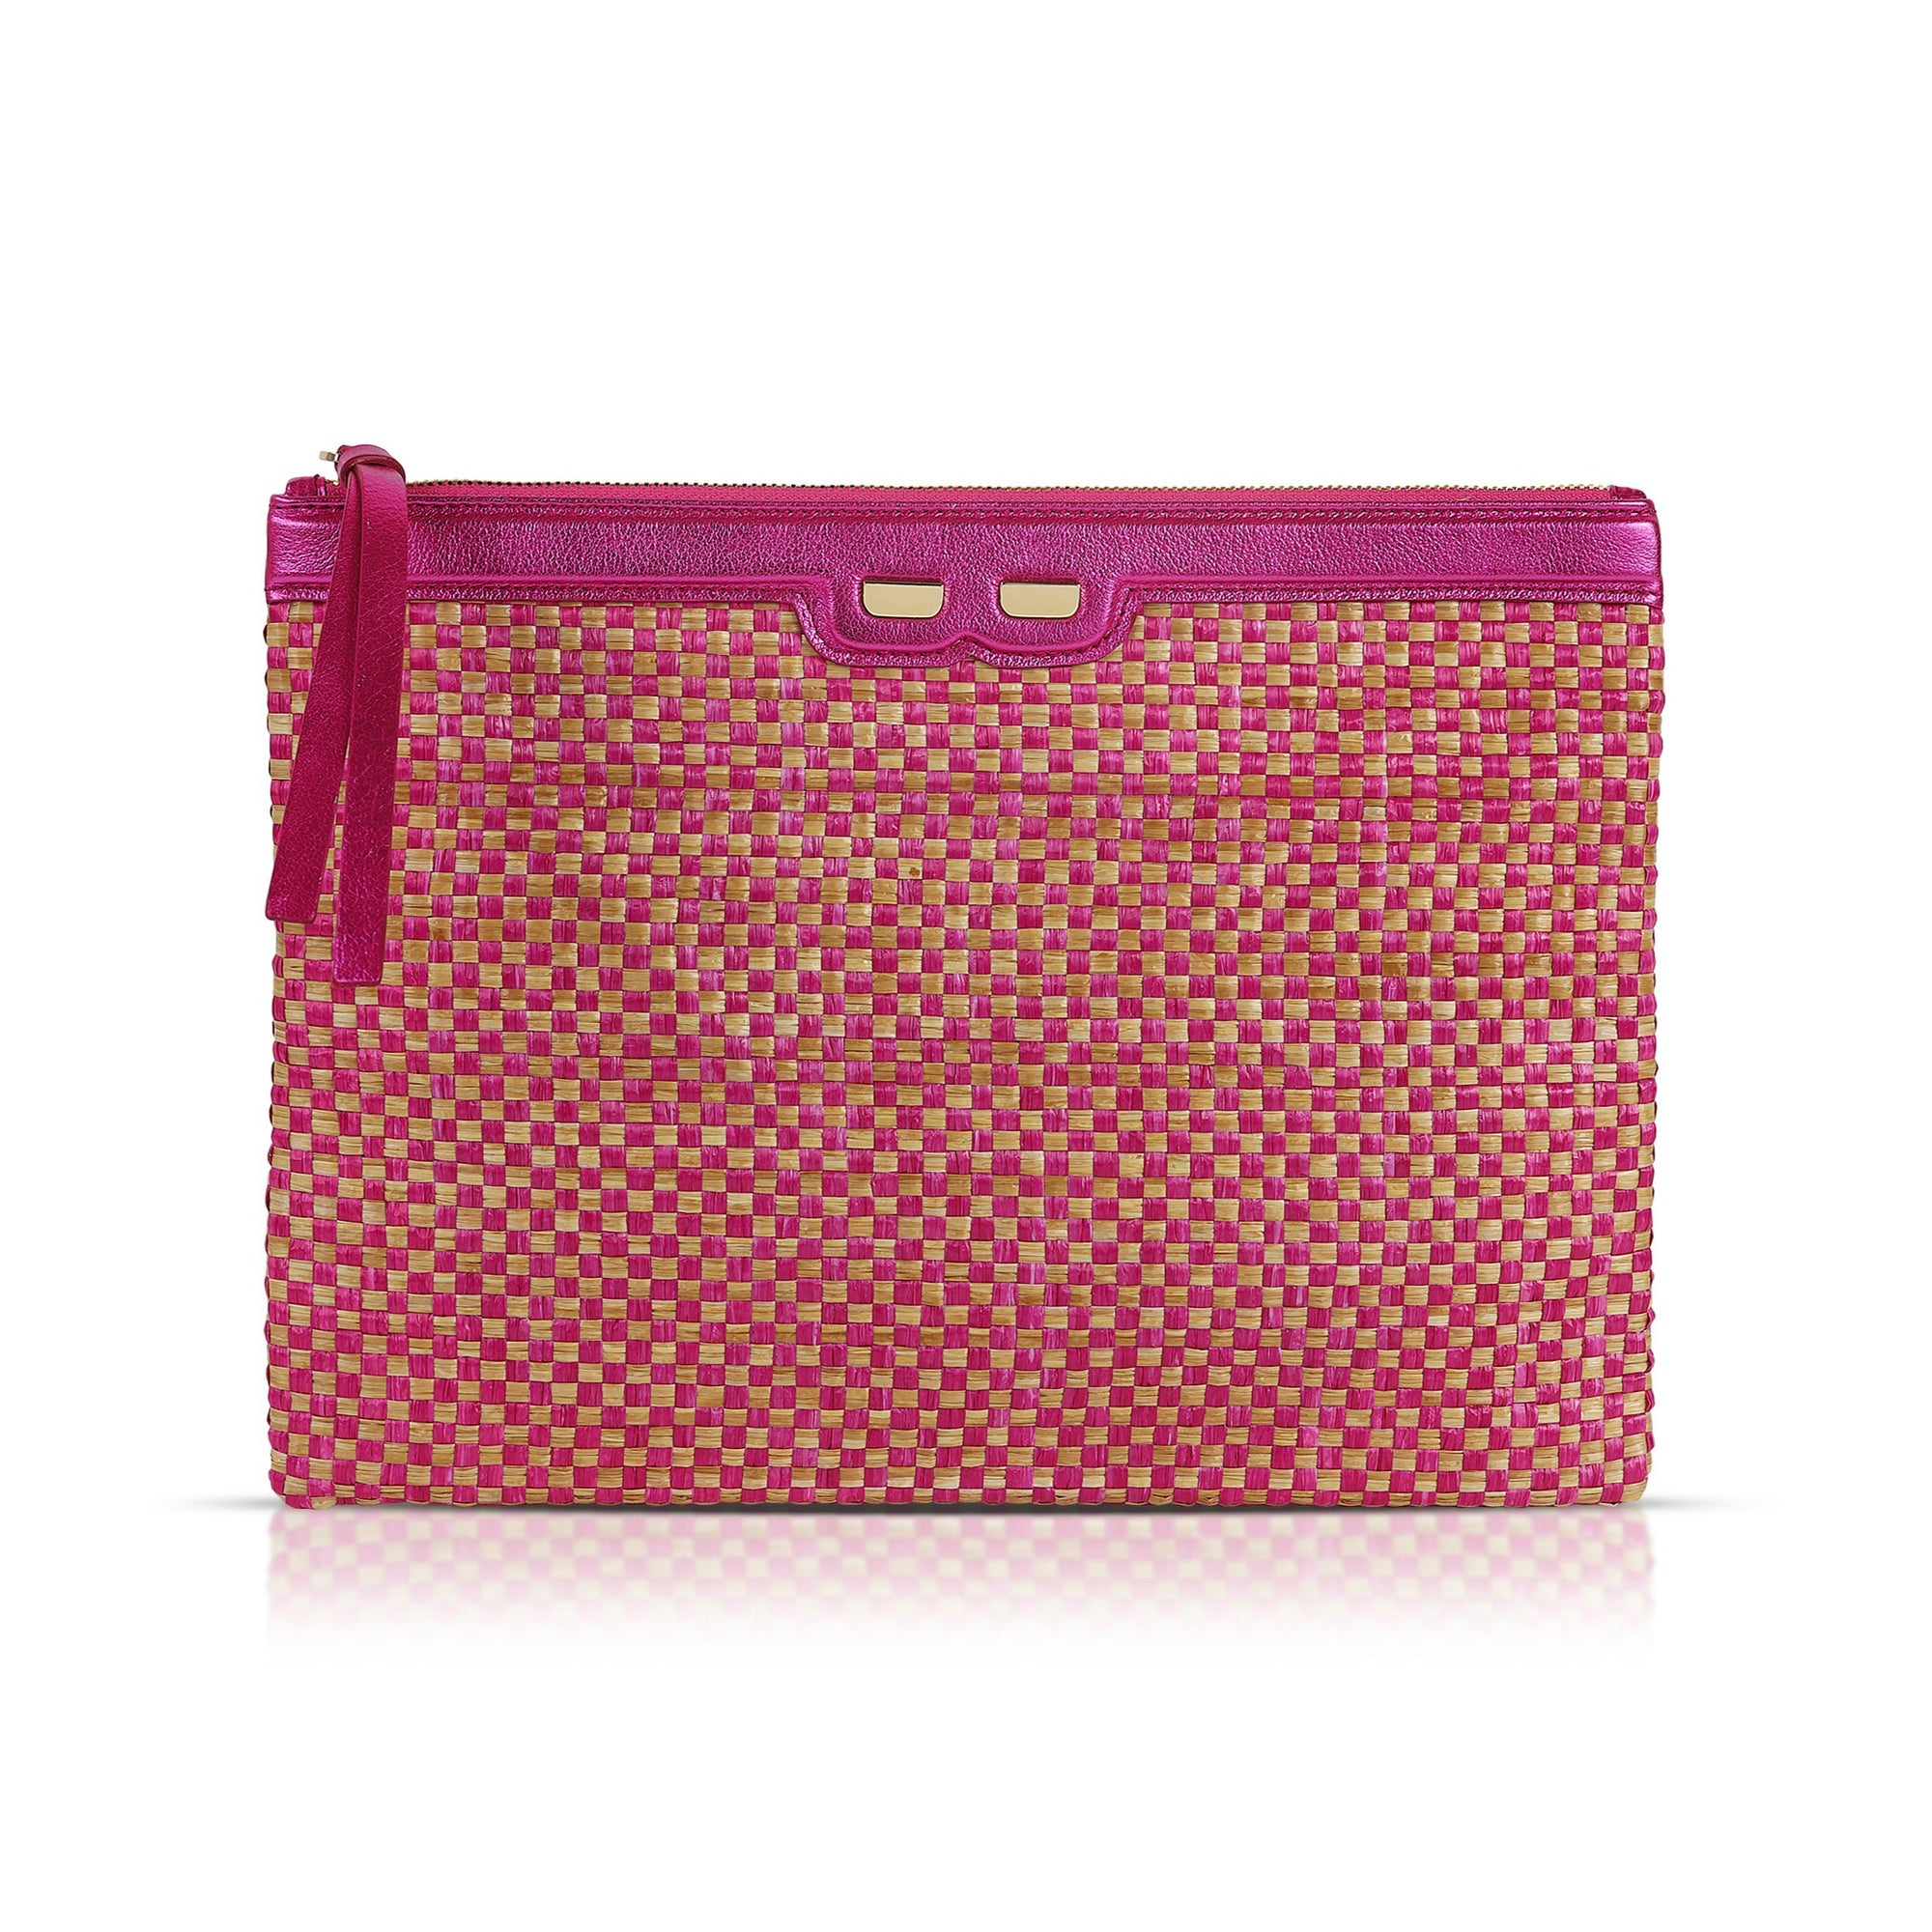 Penny in Metallic Pink & Raffia